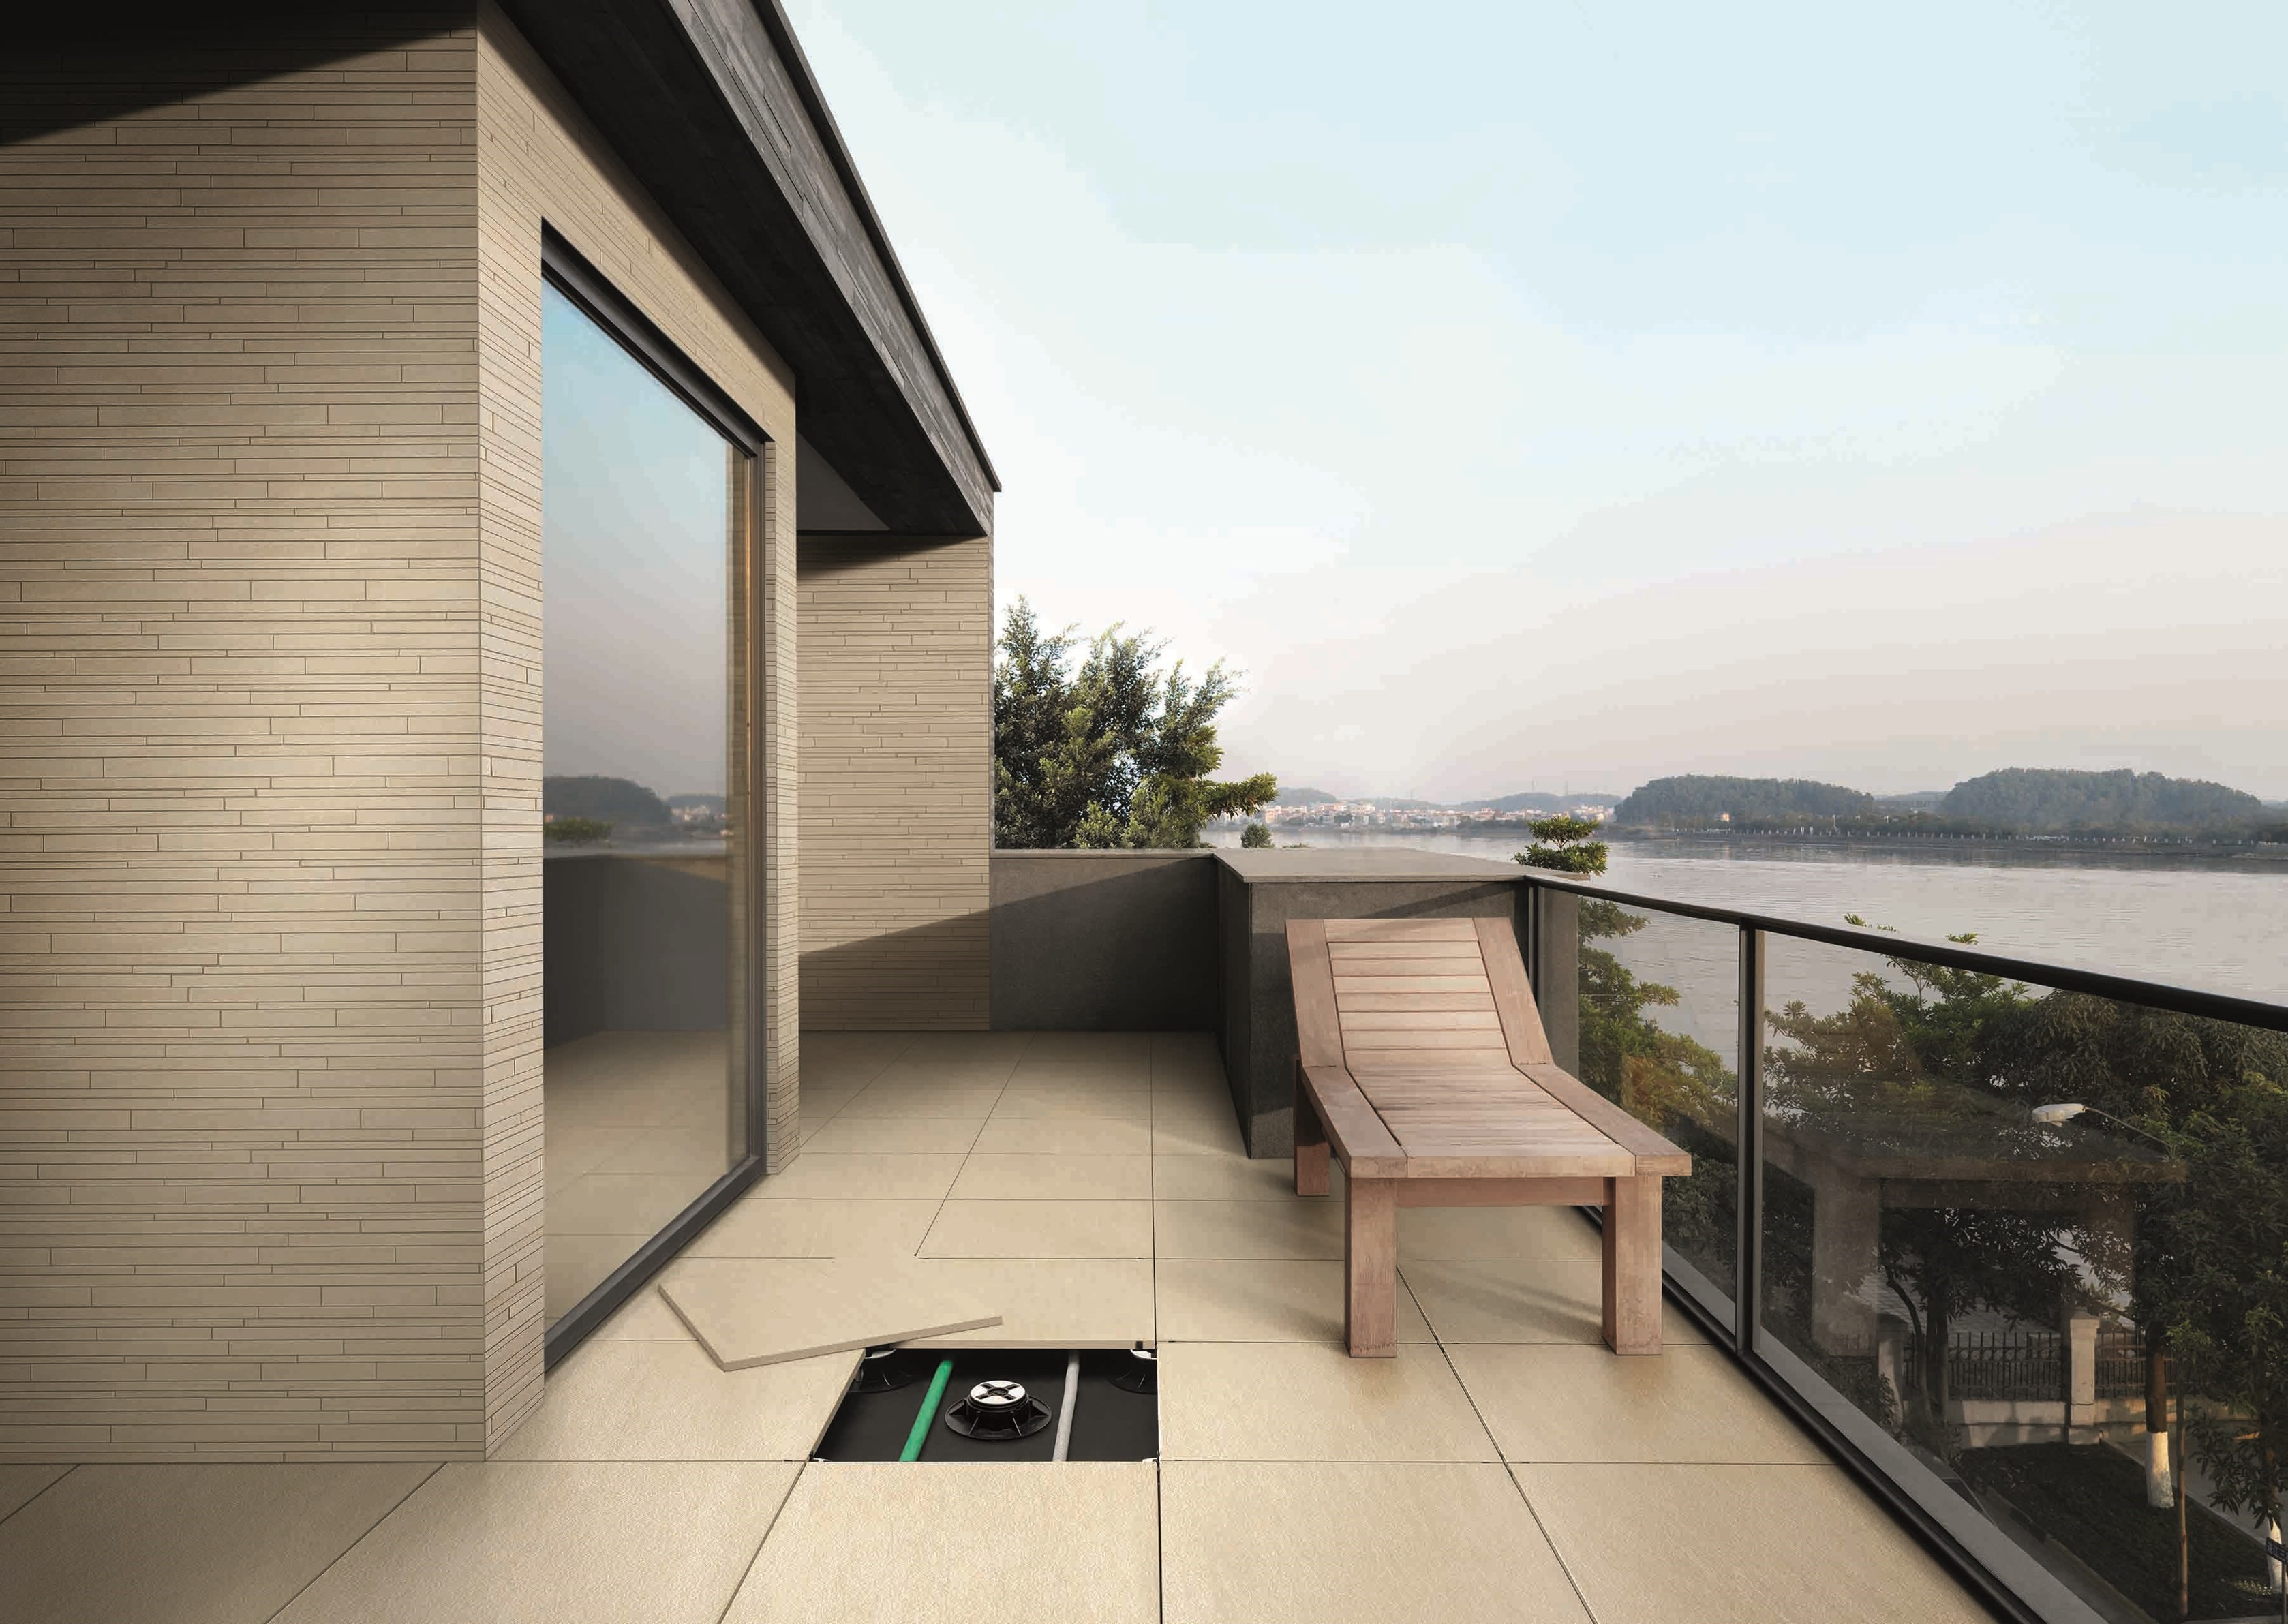 Dalles contemporaines gr s c rame pour terrasse sur plots for Dalles de terrasse sur plots